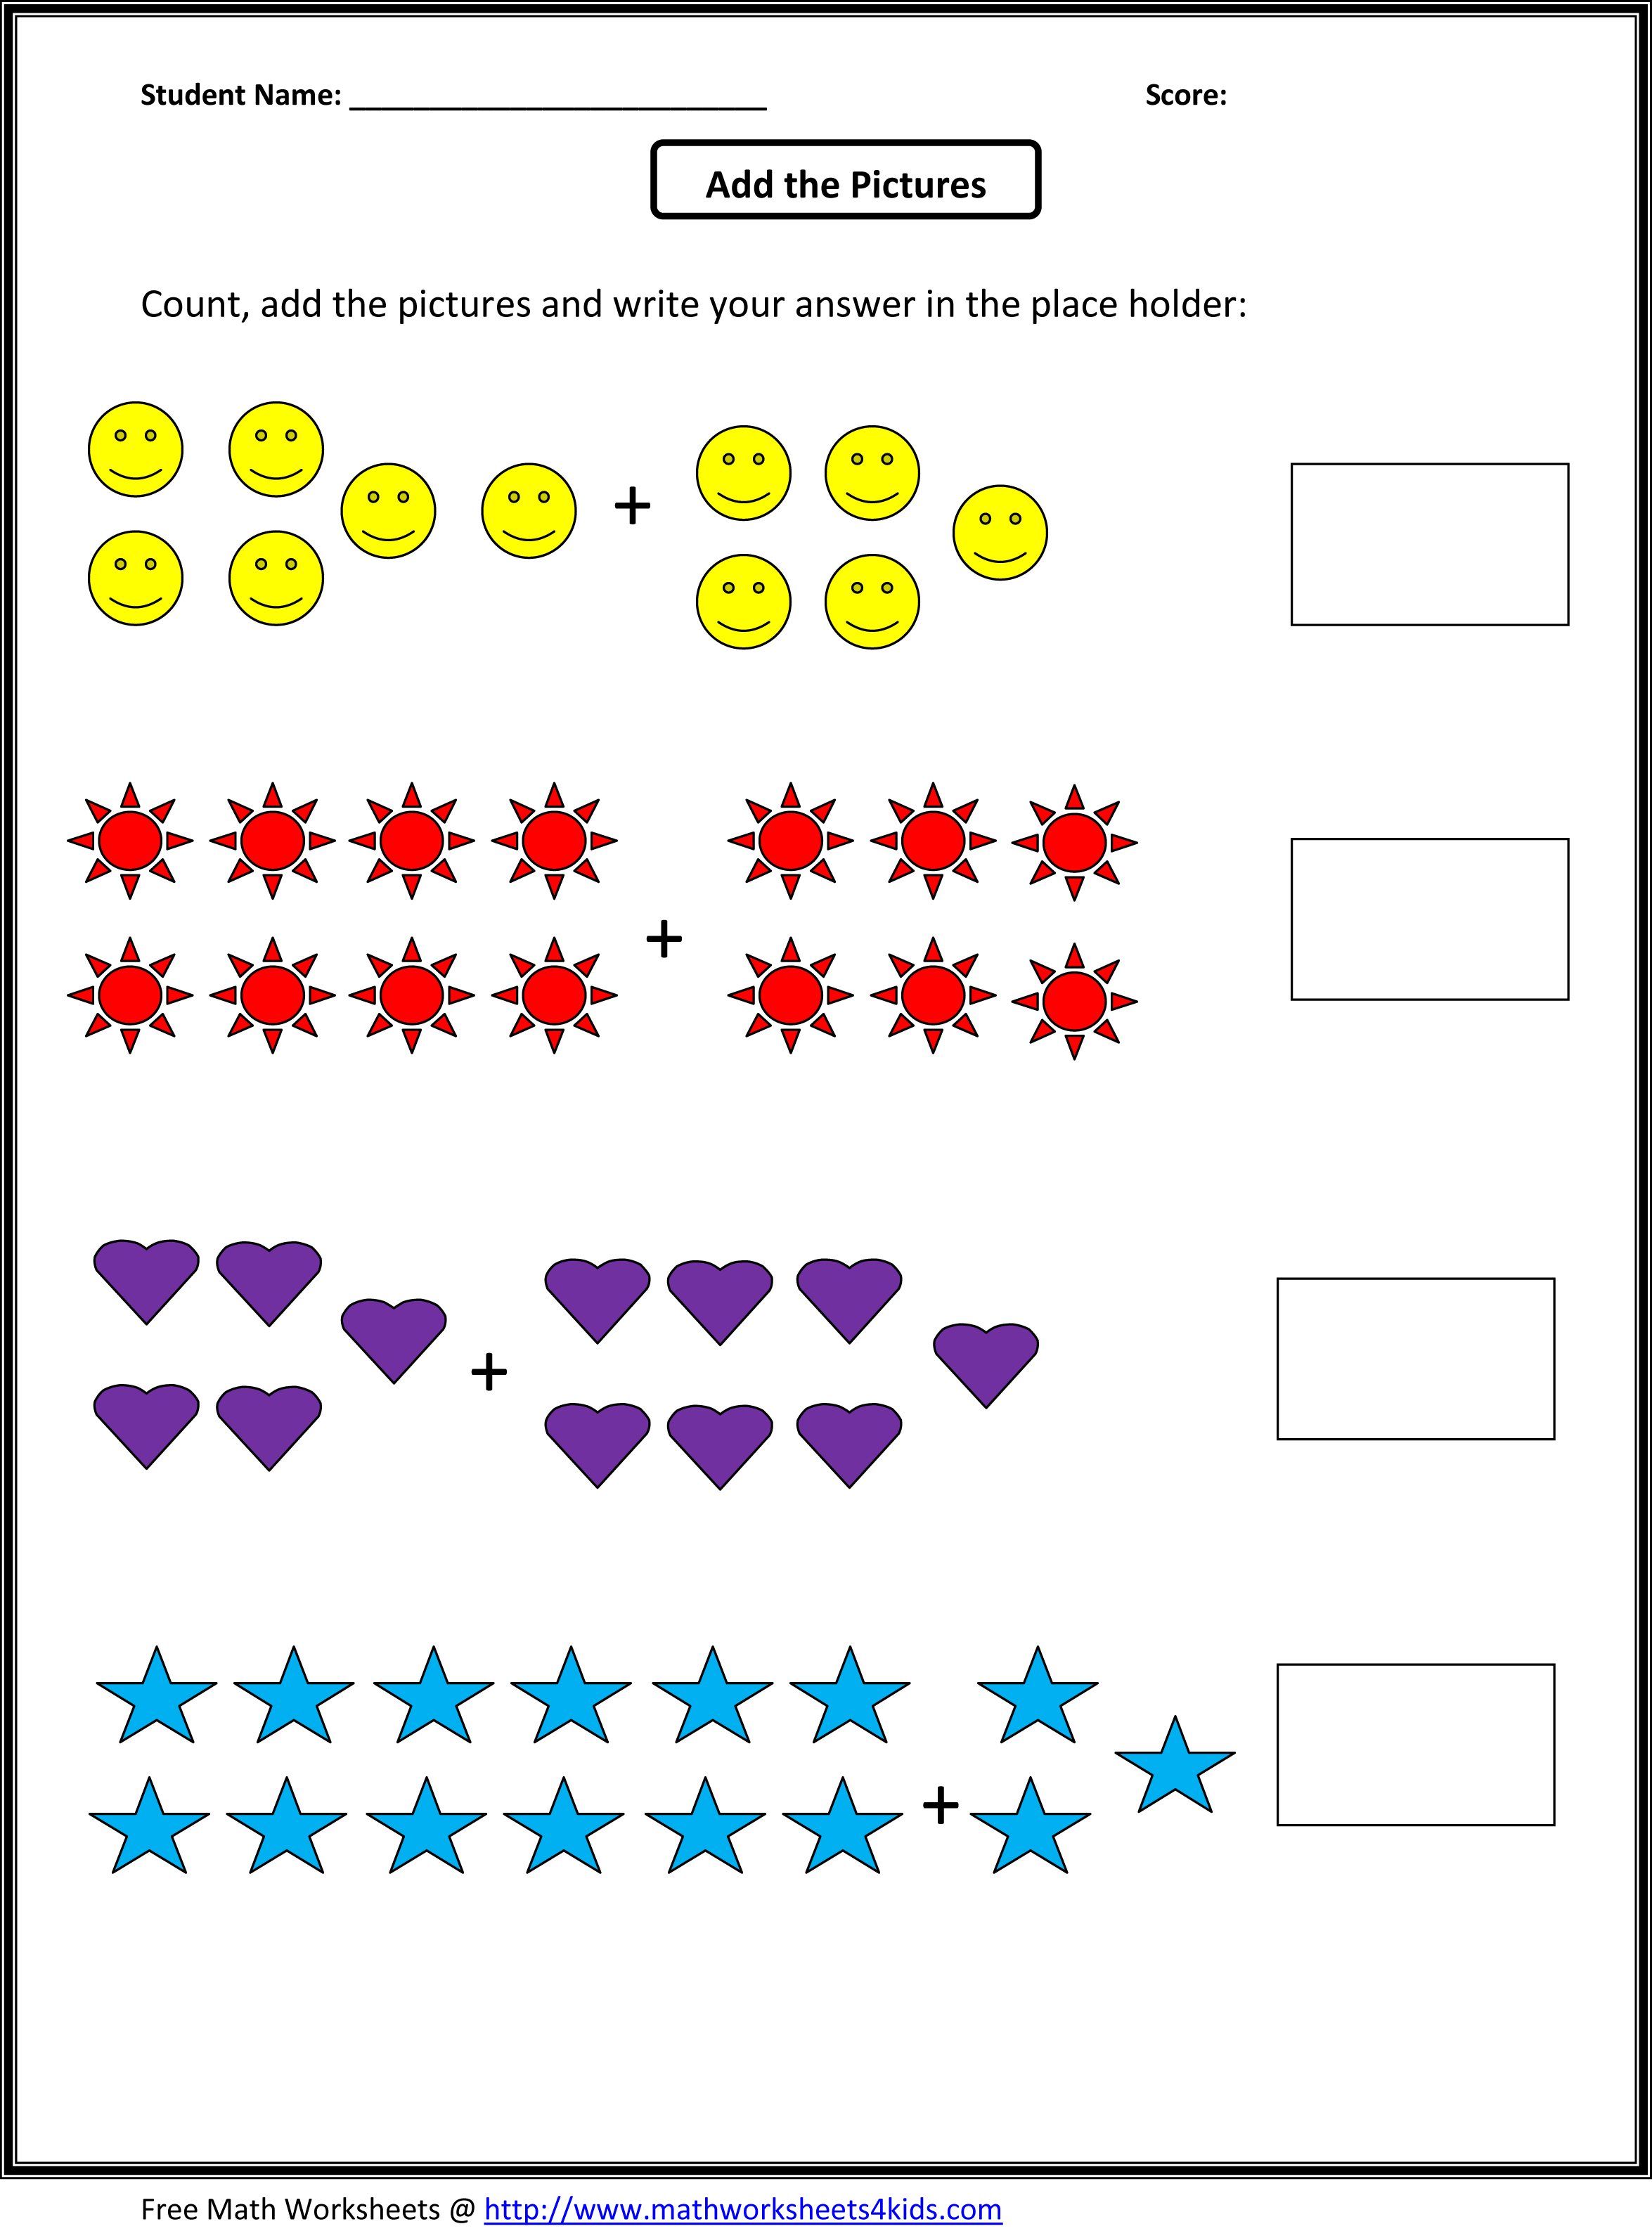 Aldiablosus  Outstanding Grade  Maths Worksheet  Reocurent With Goodlooking Math Worksheets For St Grade Free  Reocurent With Agreeable Grade  Comprehension Worksheets Also Horizontal Bar Graph Worksheets In Addition Angles On A Line Worksheet And Fill In The Blanks Worksheet As Well As Worksheets On Nouns For Grade  Additionally Commercial Analysis Worksheet From Reocurentcom With Aldiablosus  Goodlooking Grade  Maths Worksheet  Reocurent With Agreeable Math Worksheets For St Grade Free  Reocurent And Outstanding Grade  Comprehension Worksheets Also Horizontal Bar Graph Worksheets In Addition Angles On A Line Worksheet From Reocurentcom